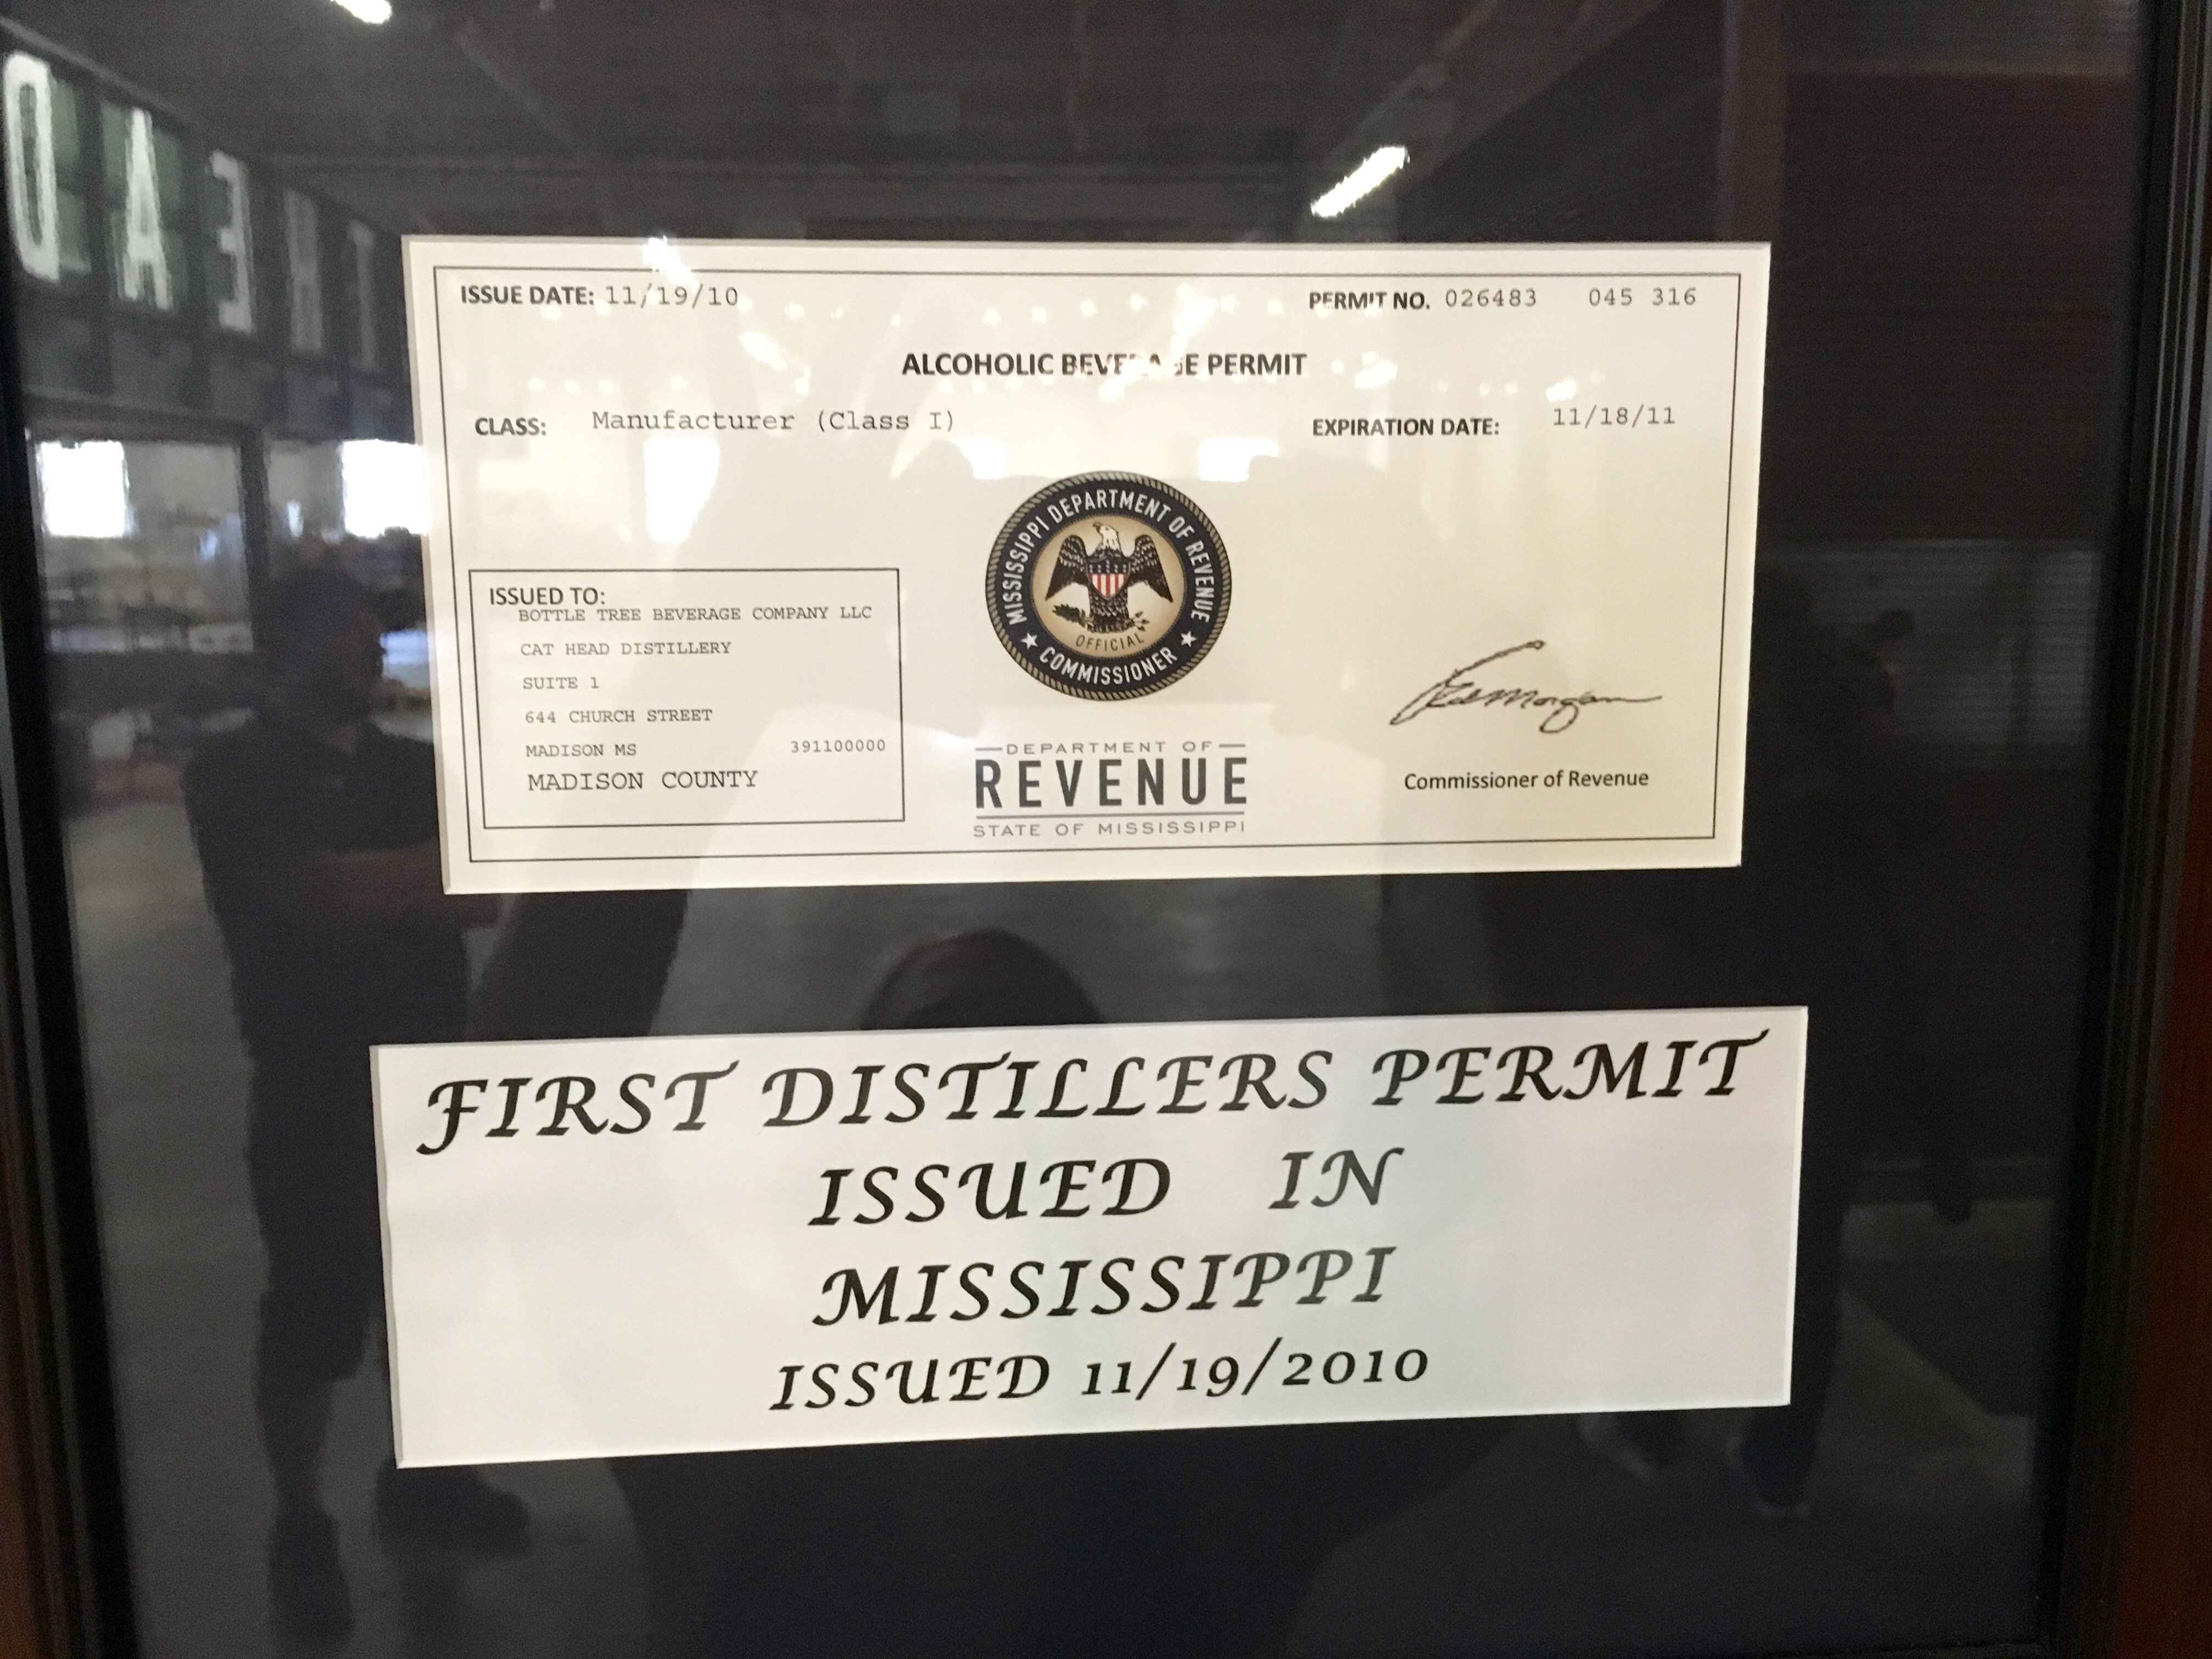 Mississippi's first distiller's permit hangs on the wall at Cathead.